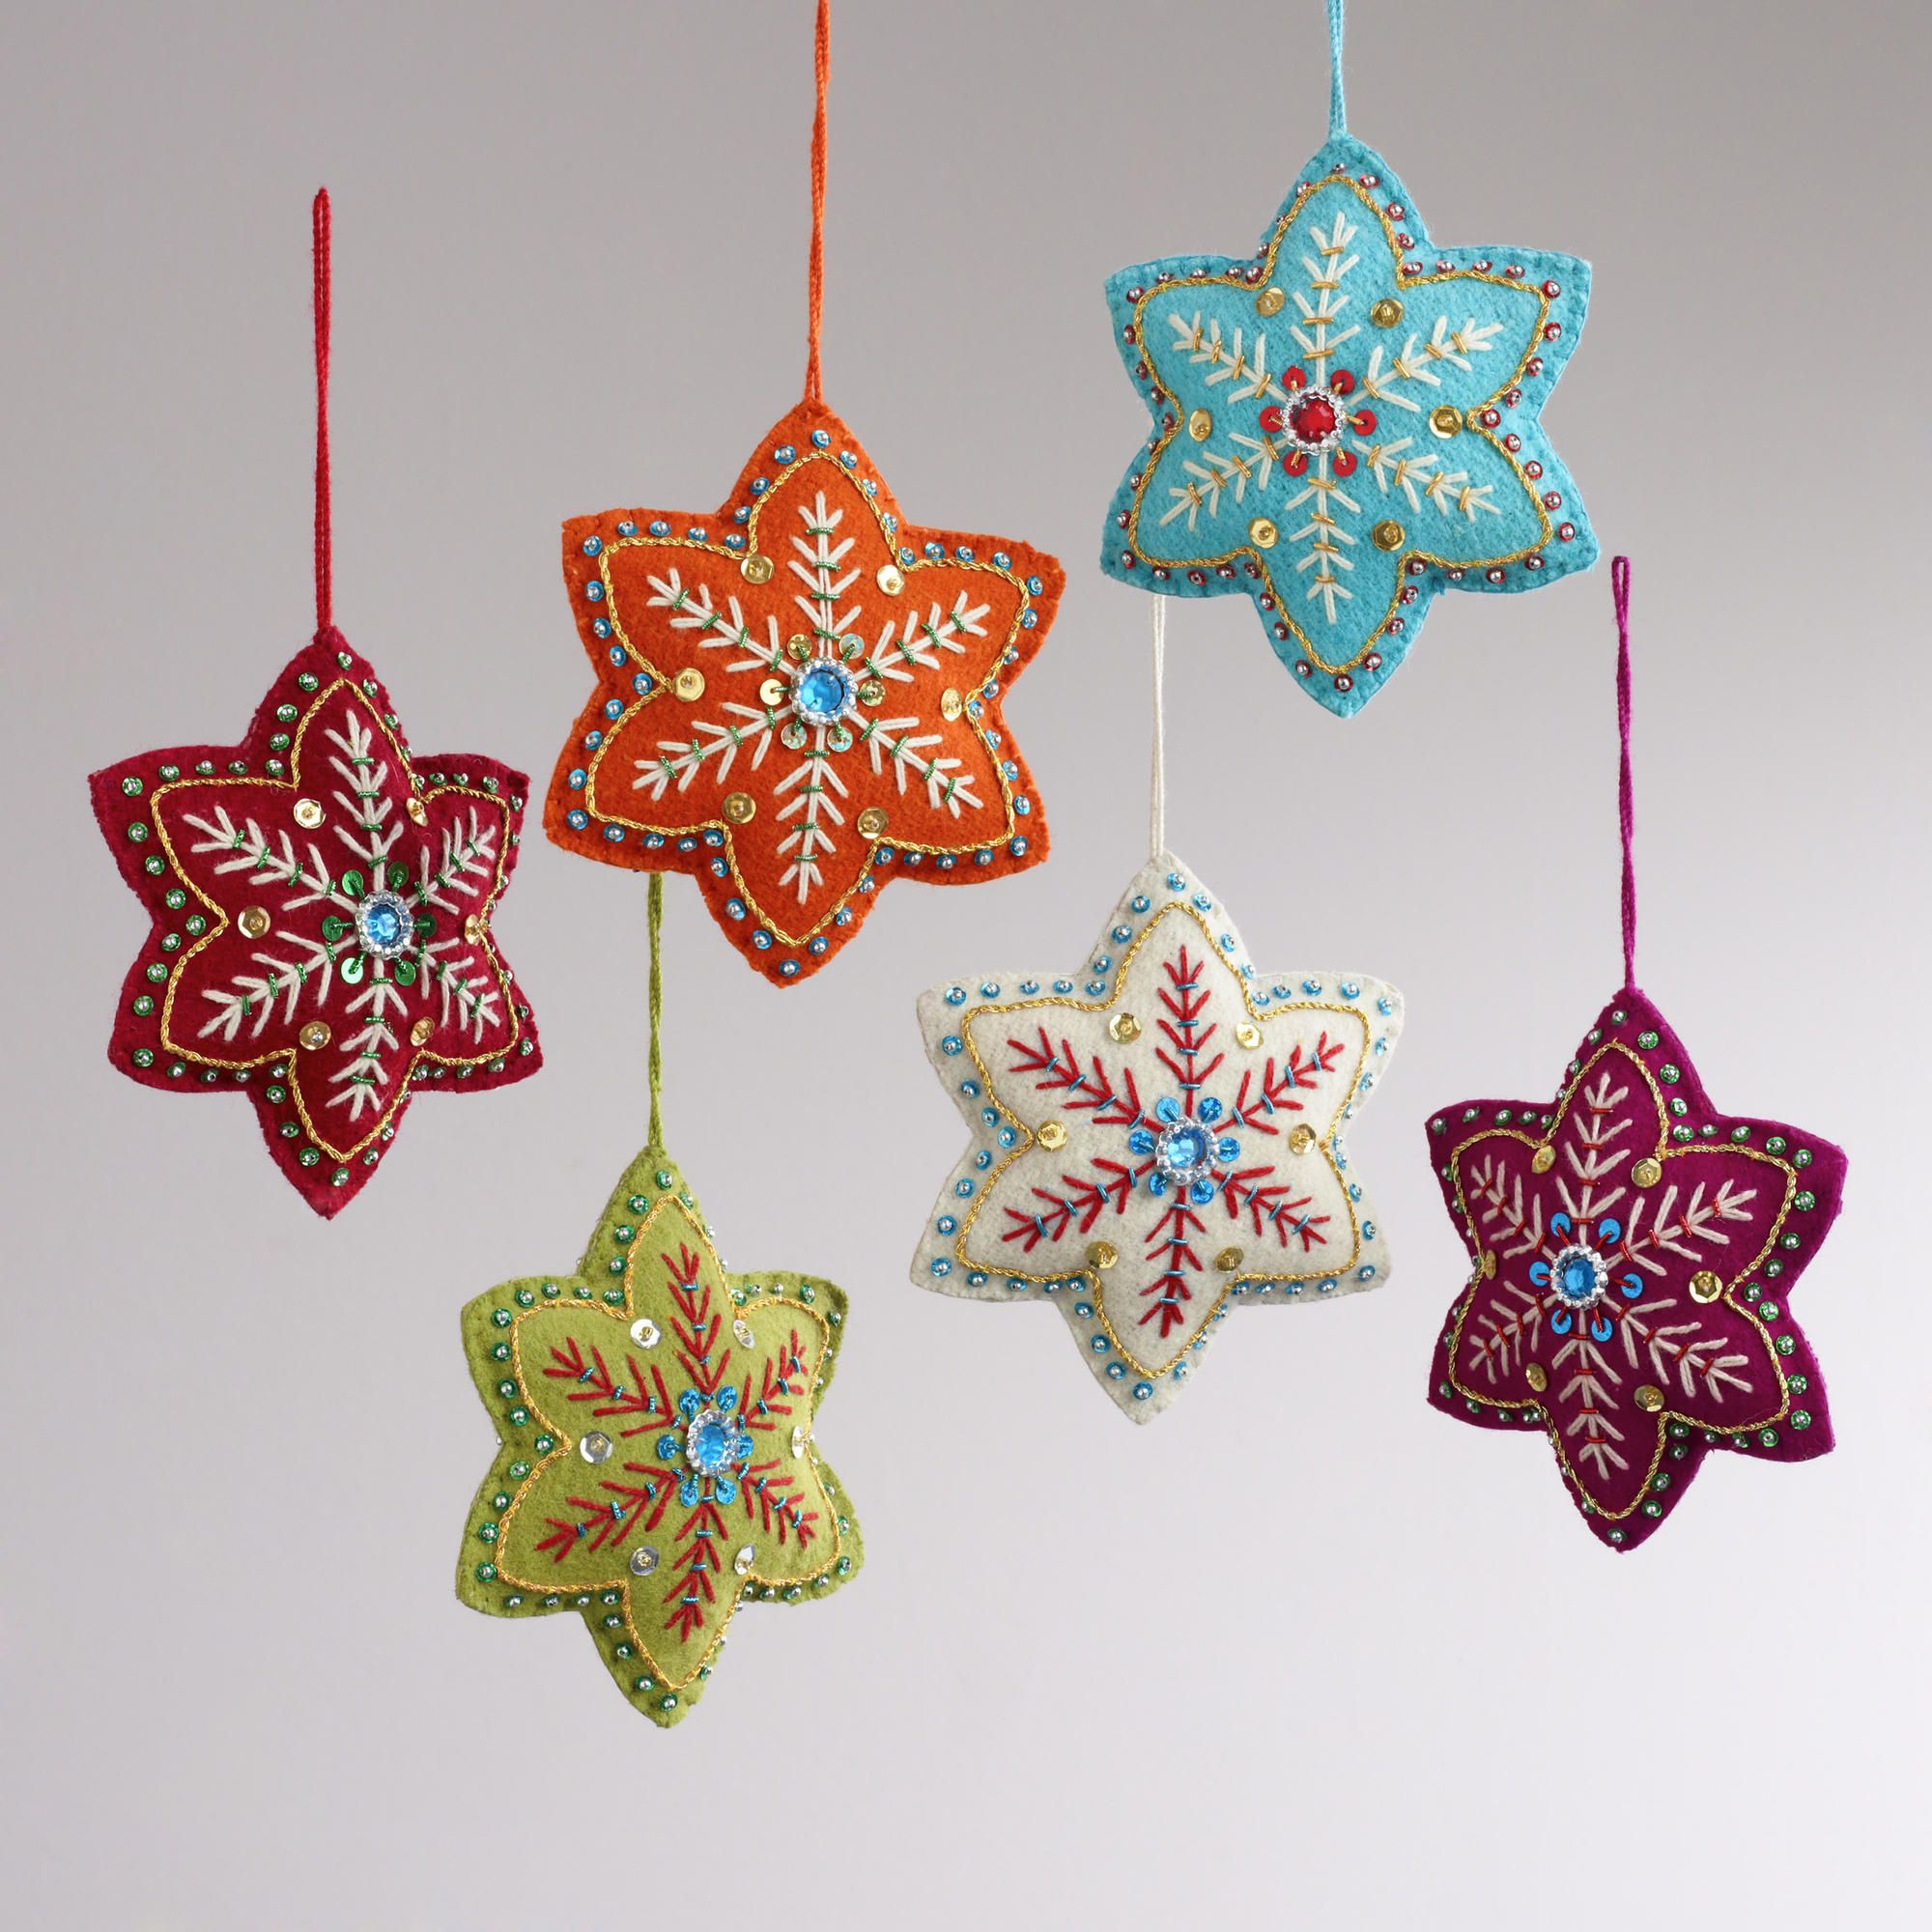 felt ornaments embroidered felt 6 pointed star ornaments set of 6 world market - Christmas Decoration Sets